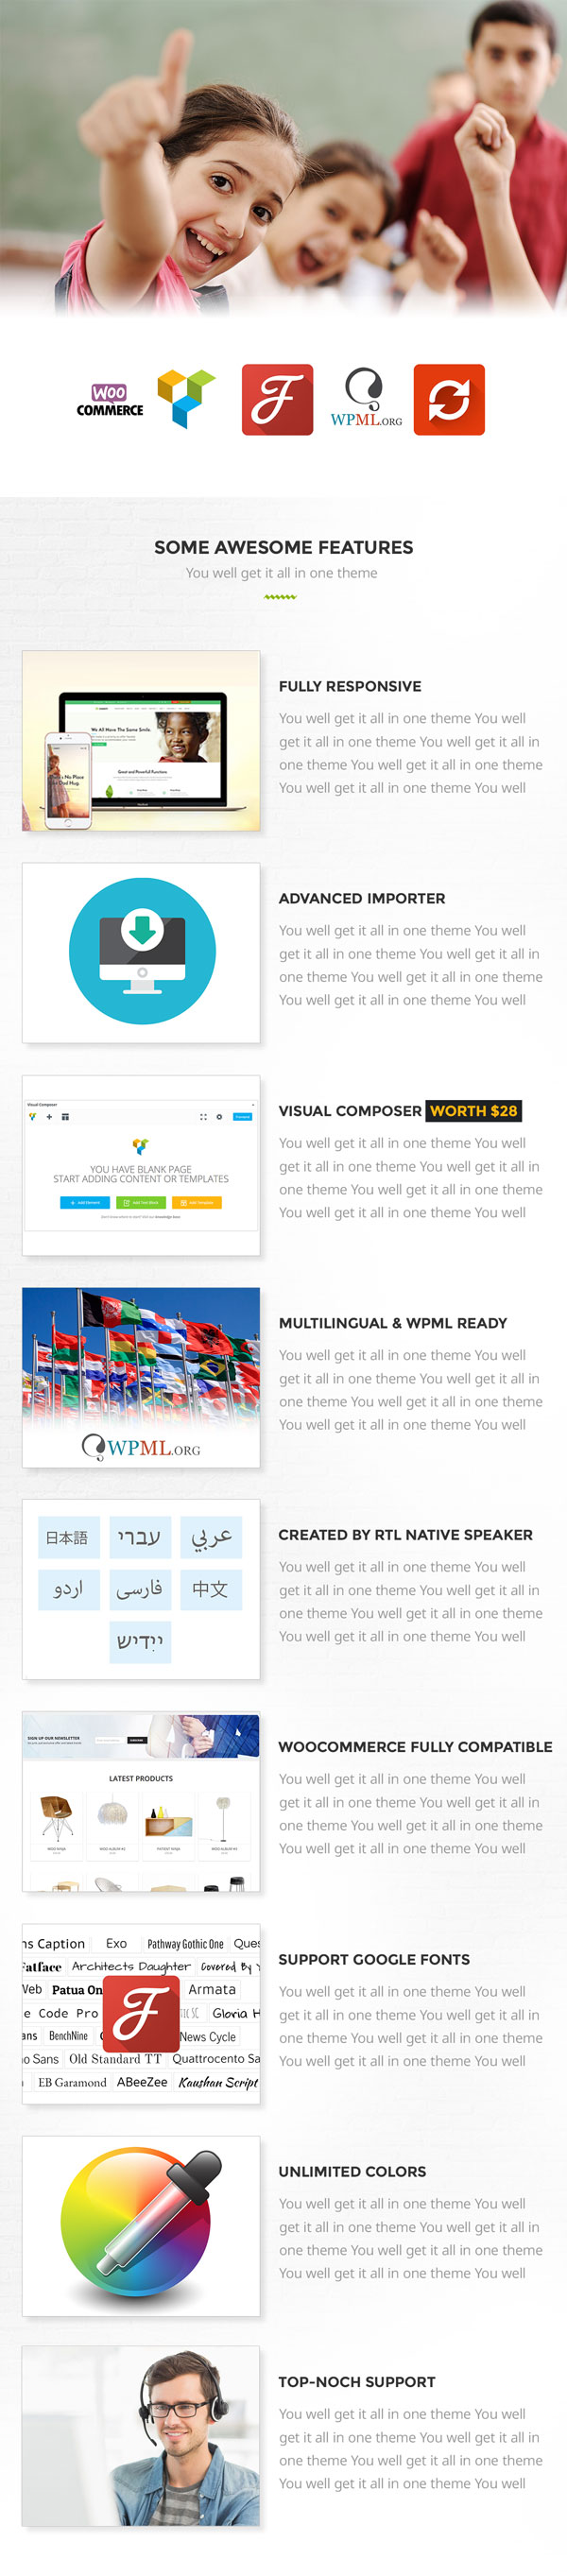 Nonprofit - NGO, Charity/Fundraising WordPress Theme